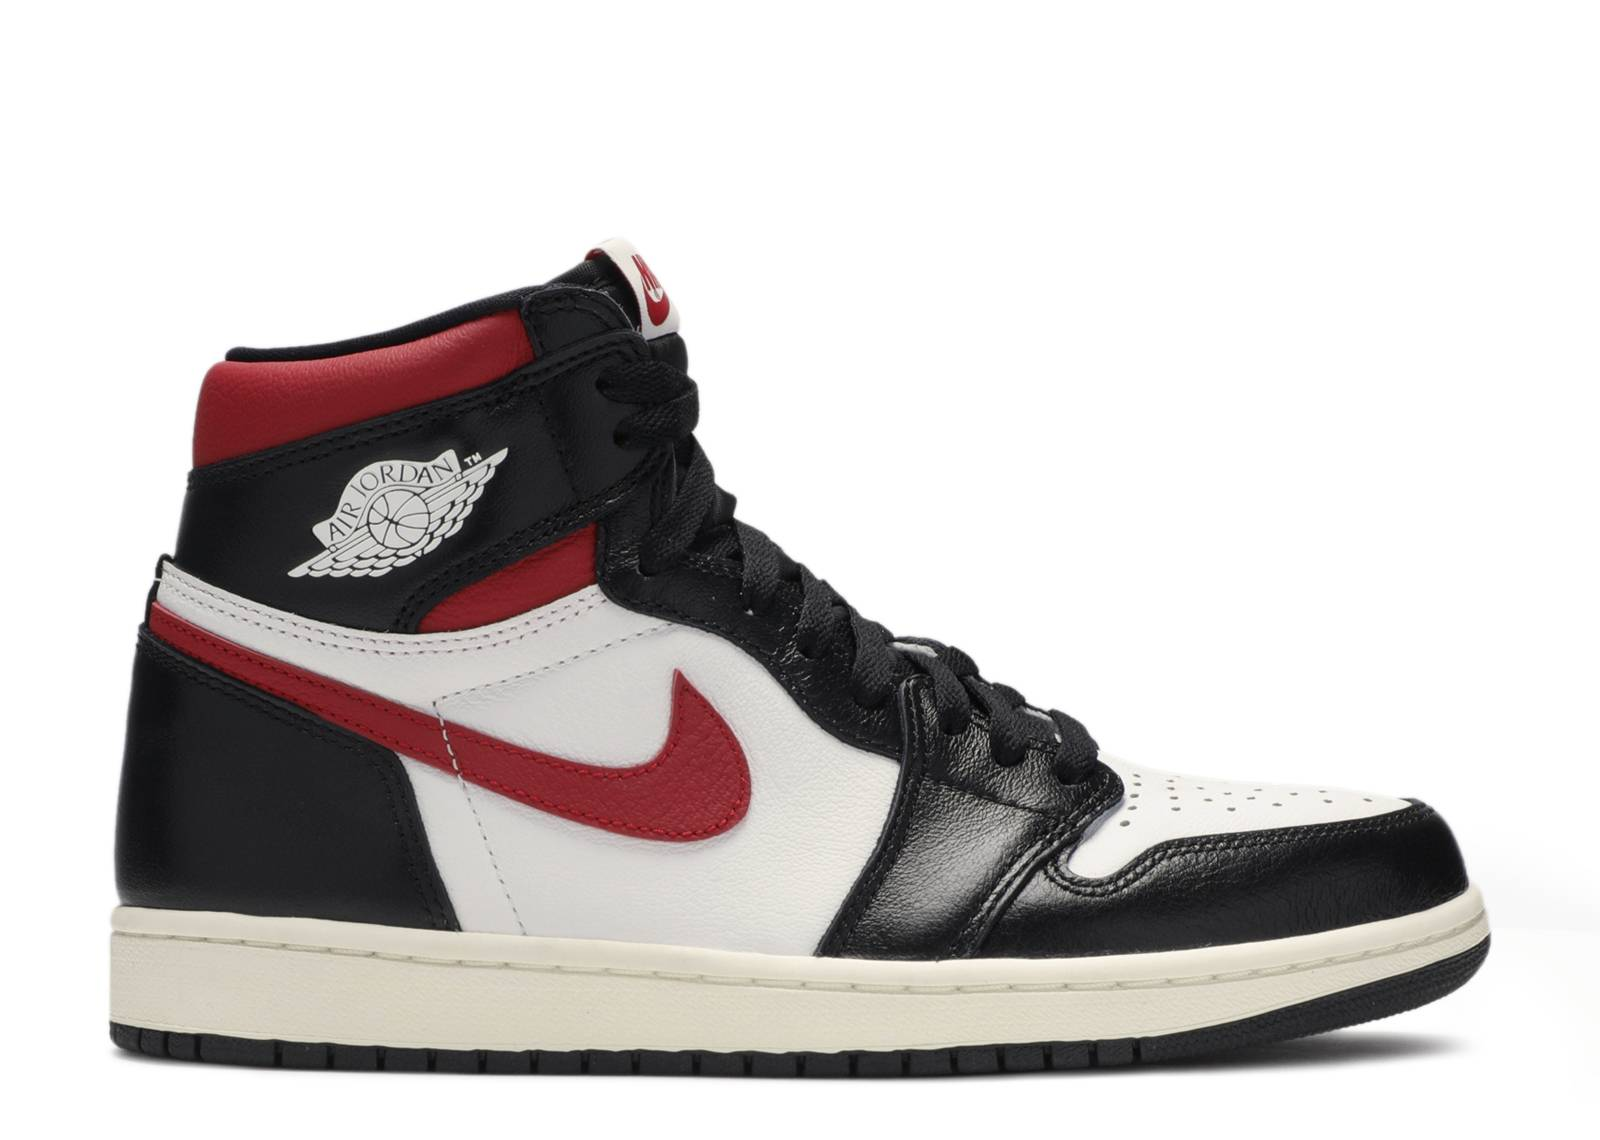 temperament shoes los angeles sold worldwide Air Jordan 1 (I) Shoes - Nike | Flight Club